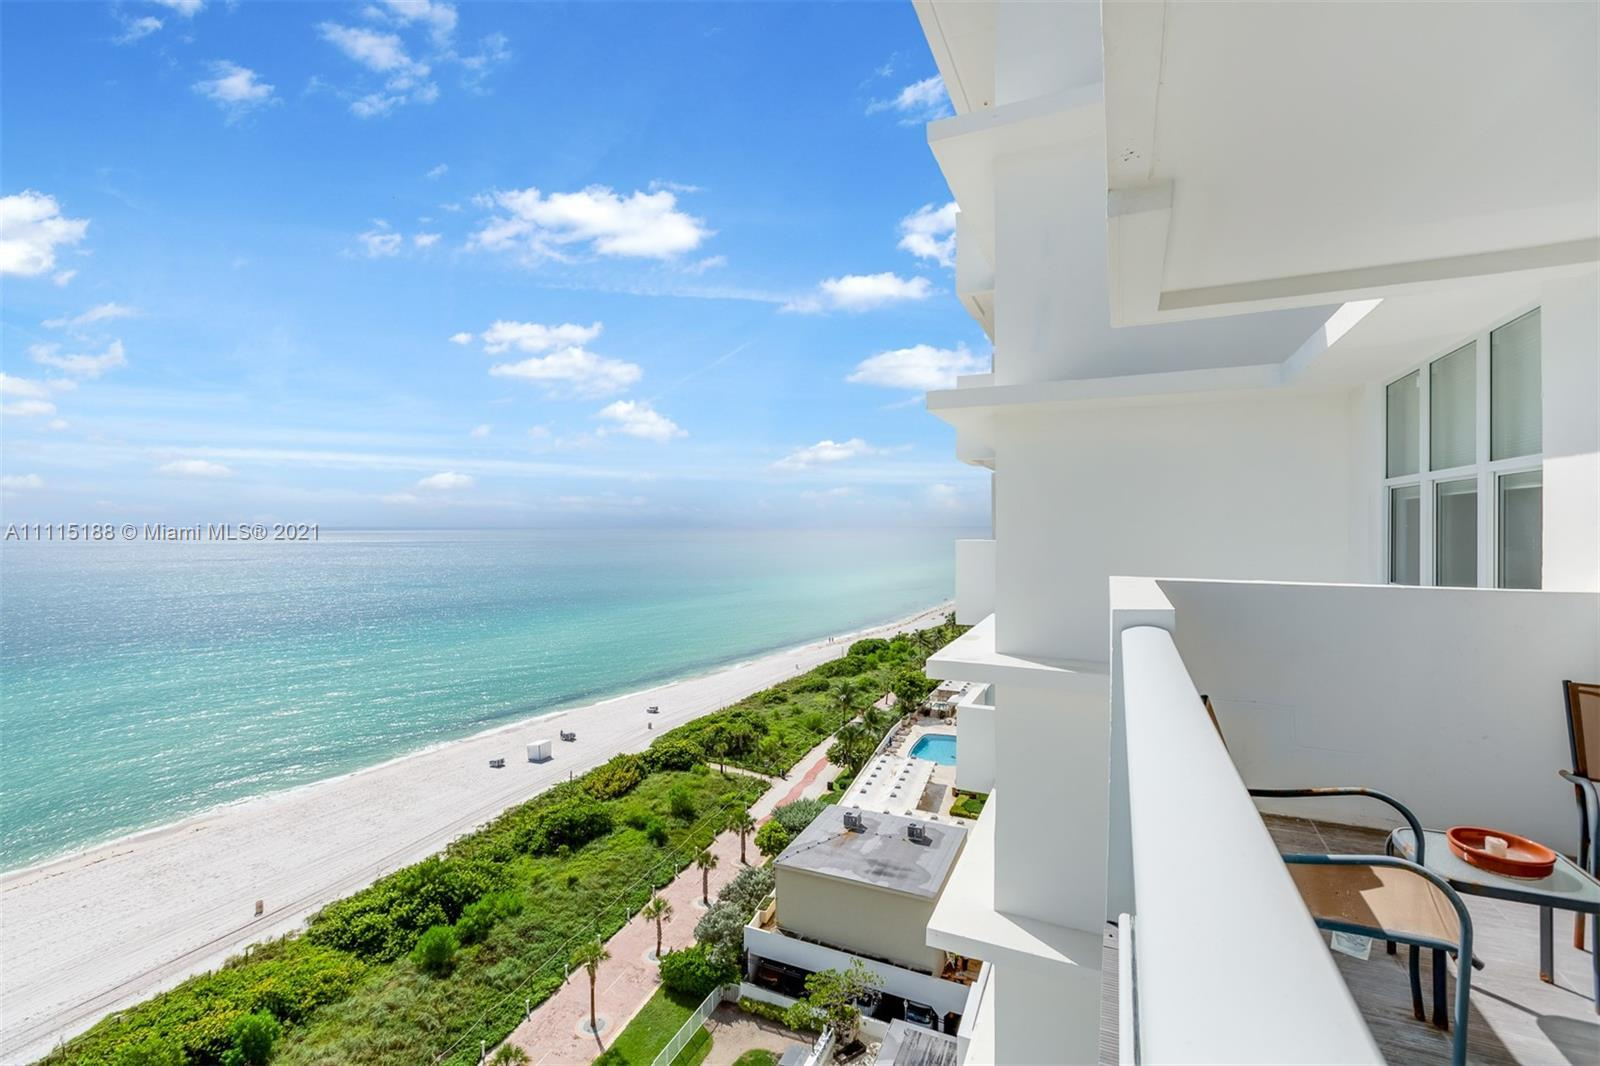 Direct oceanfront 2bedroom apartment with balcony and unobstructed, endless ocean views. Turn key, f